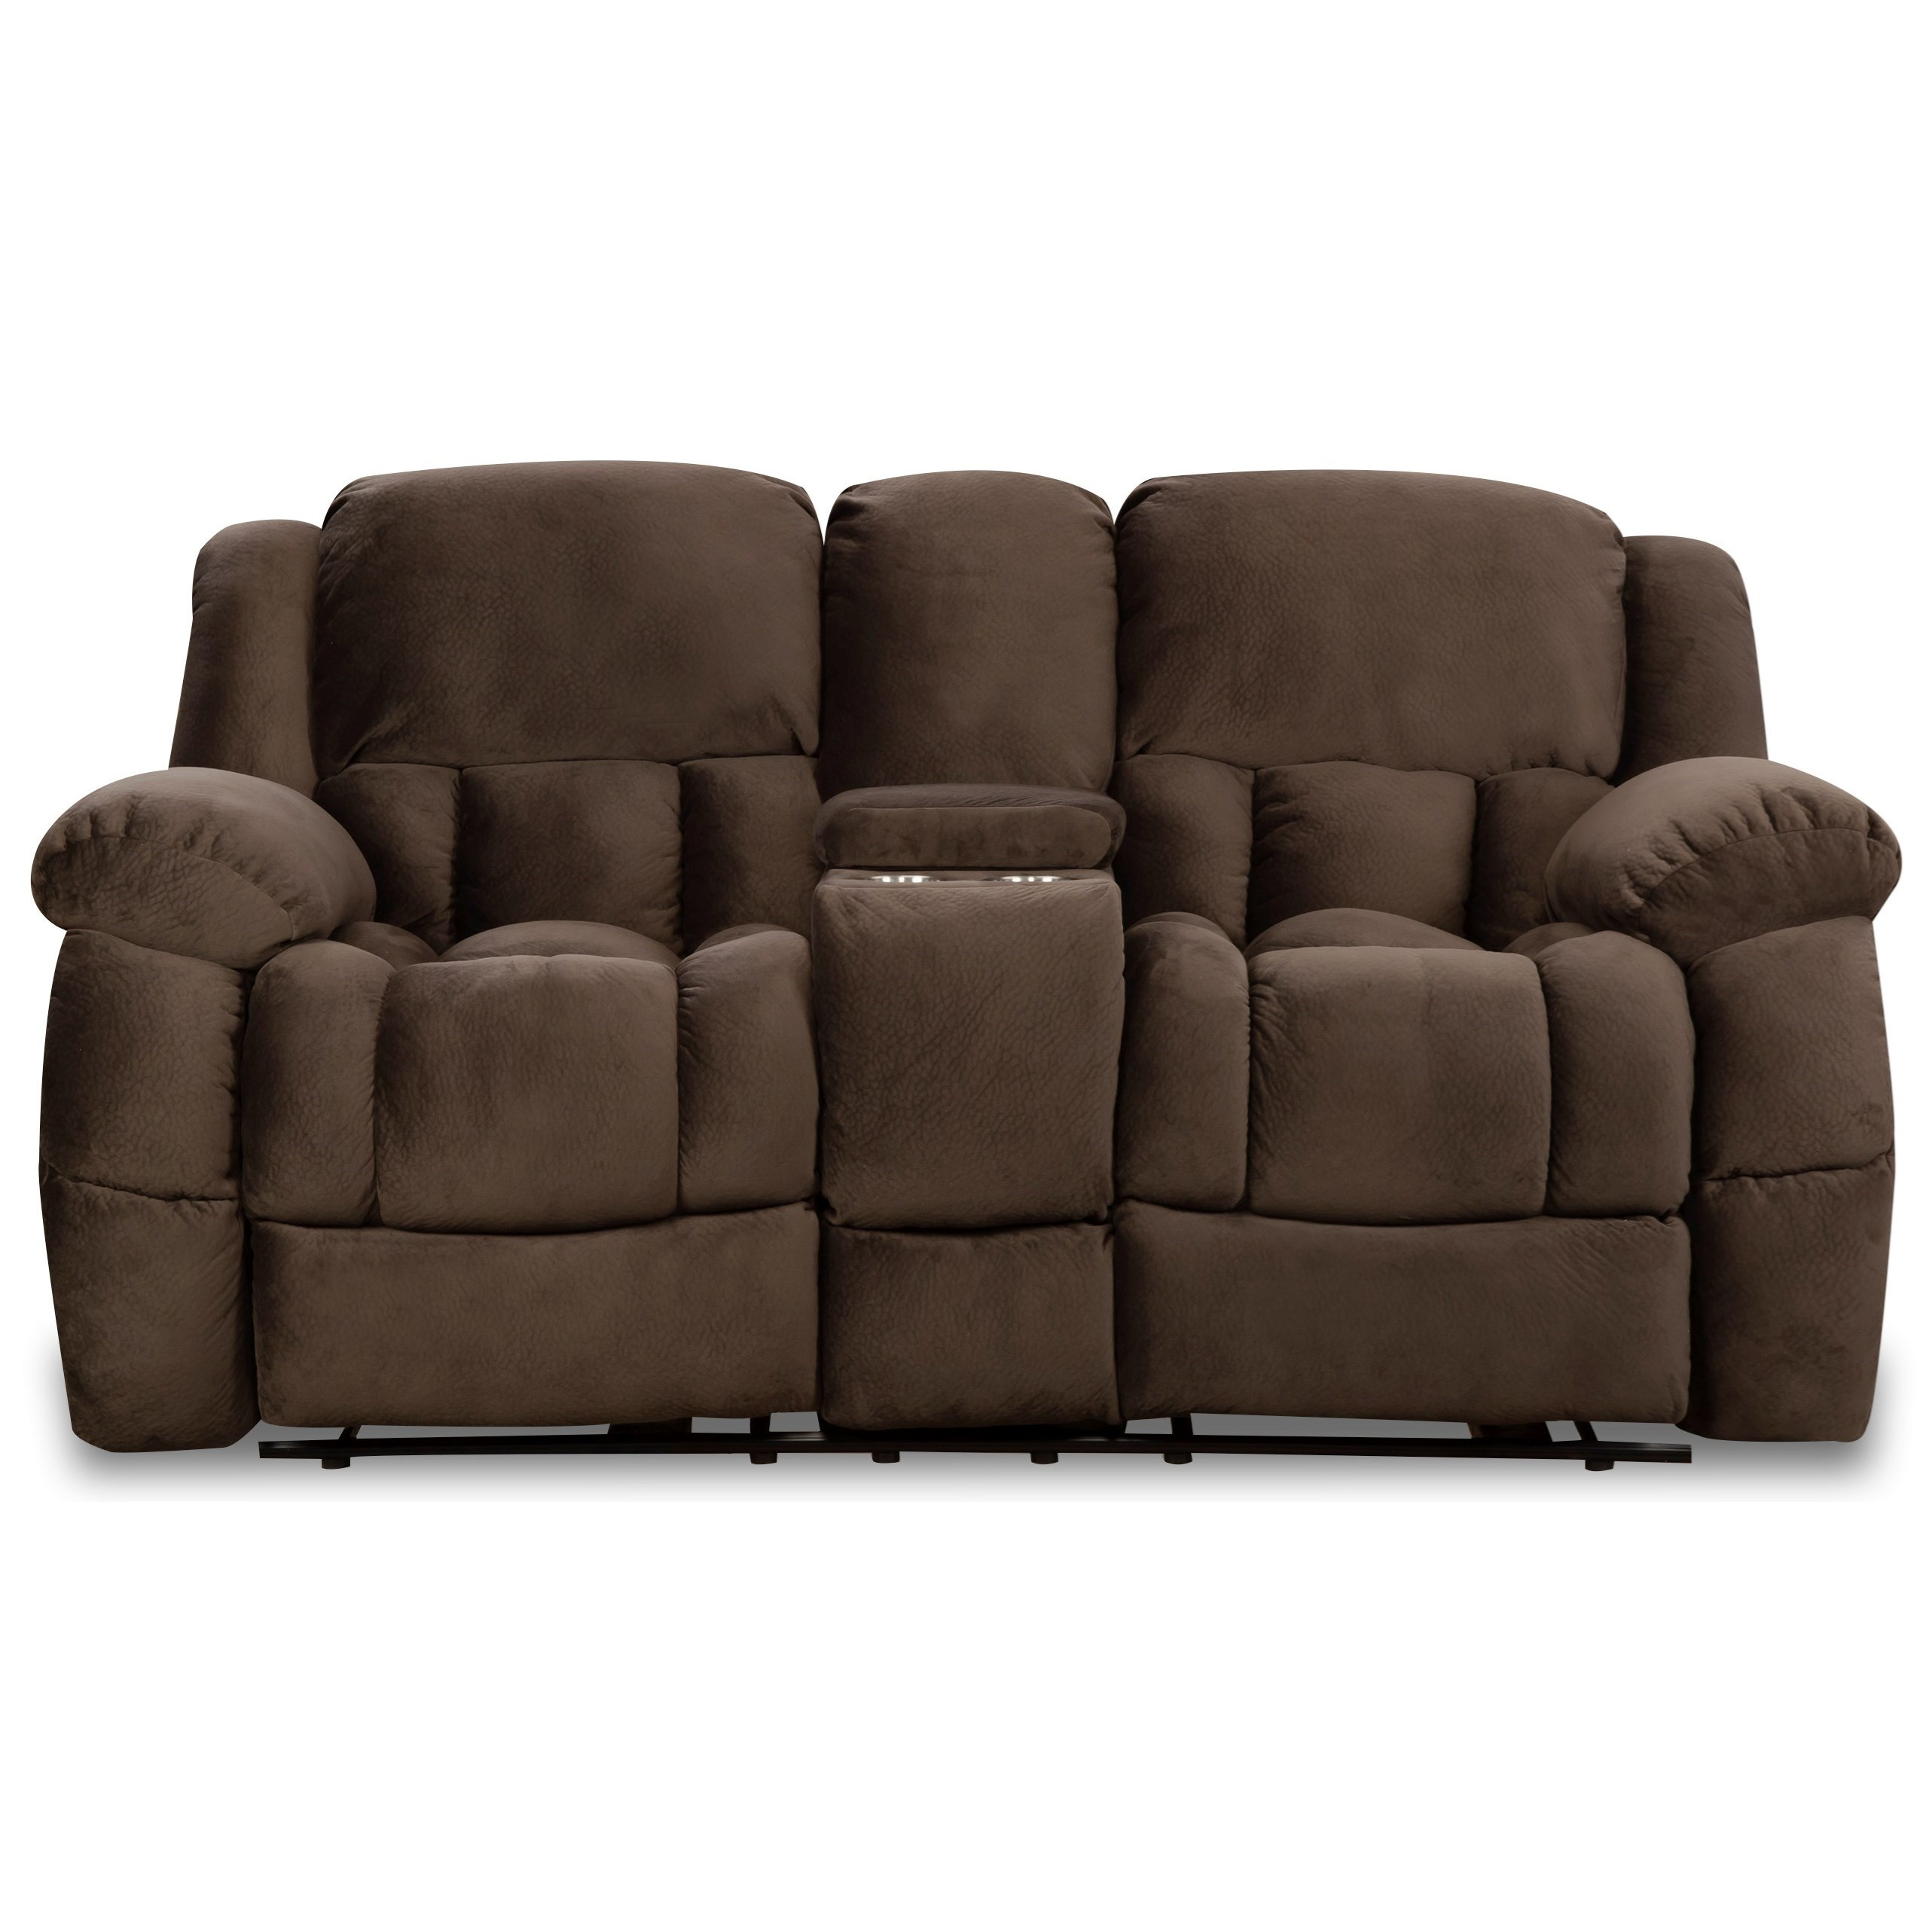 29901 Reclining Loveseat with Console by Corinthian at Story & Lee Furniture